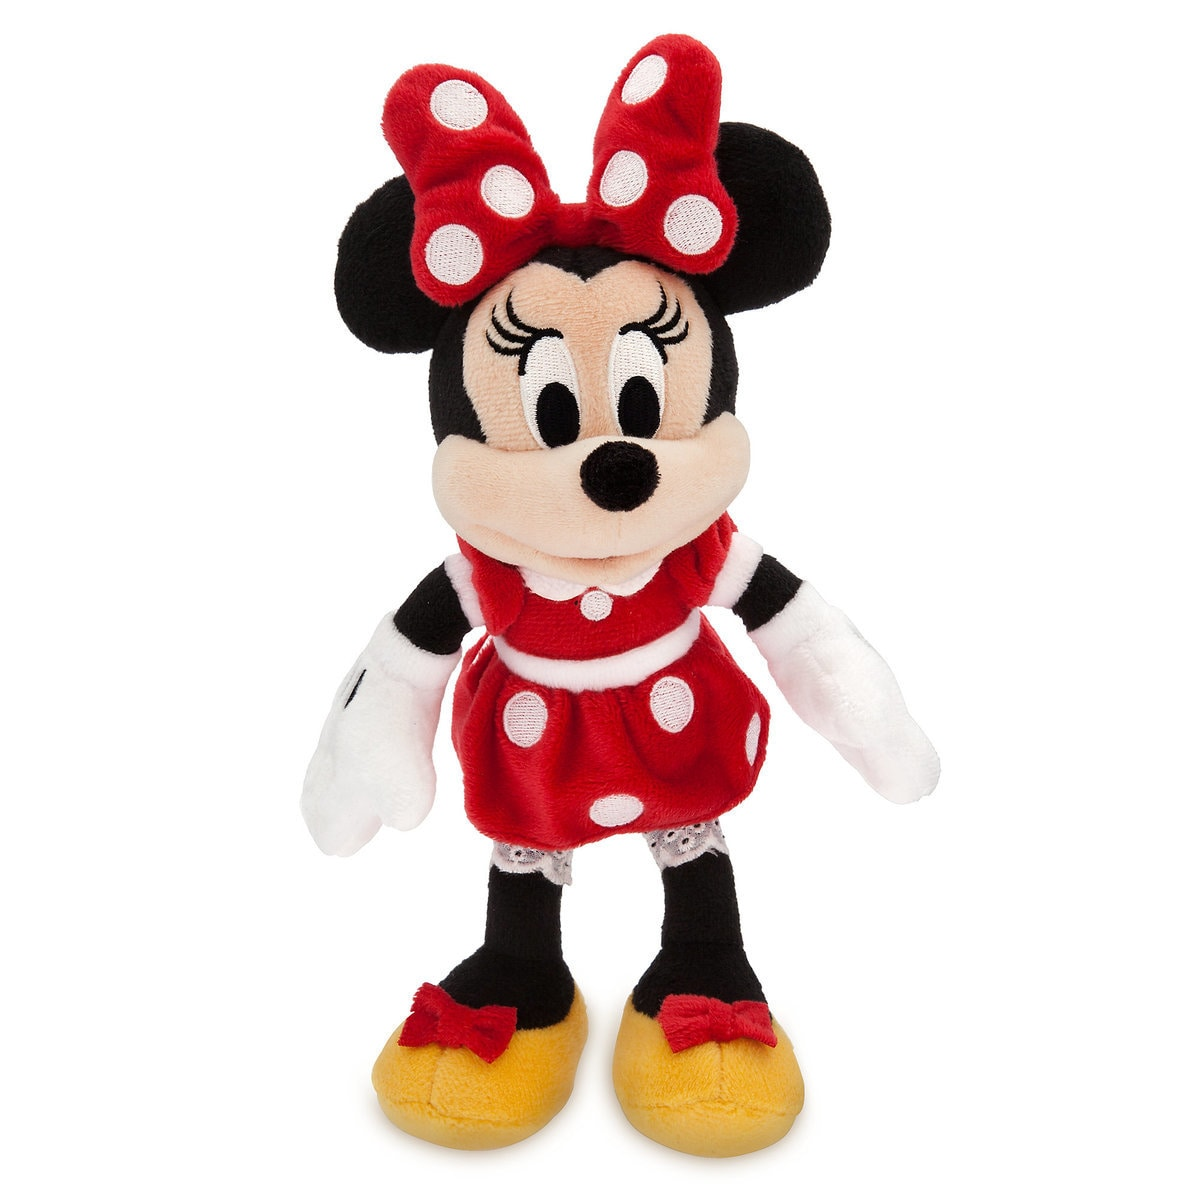 Minnie Mouse Plush Red Mini Bean Bag 9 12 Personalized